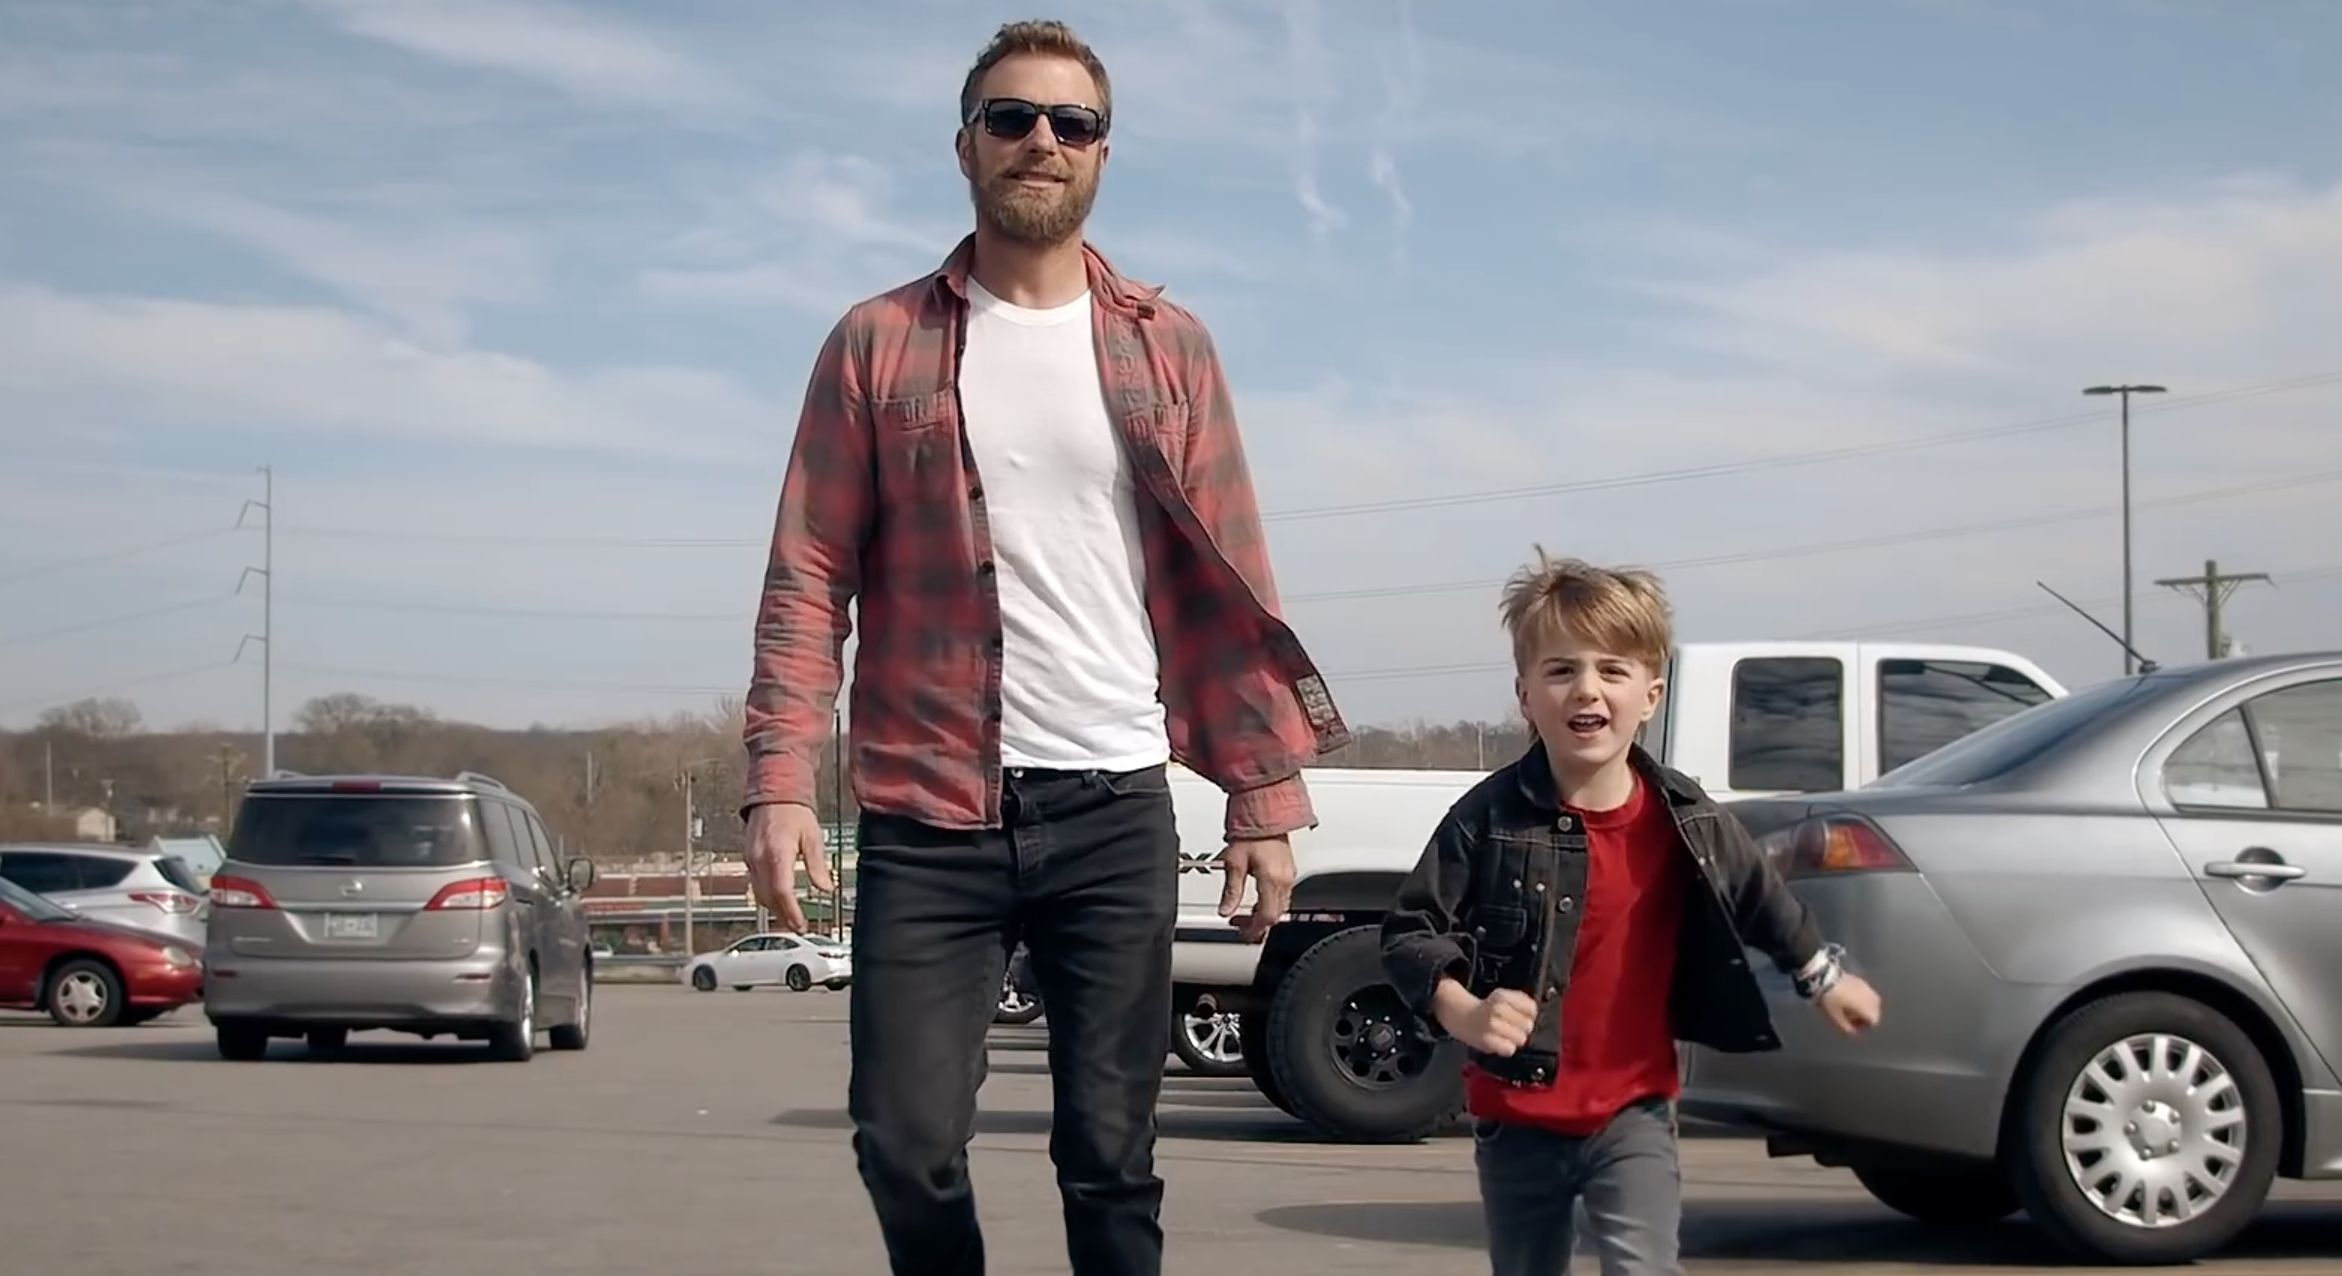 Dierks Bentley Plays the Cool Dad in New Video 'Living'